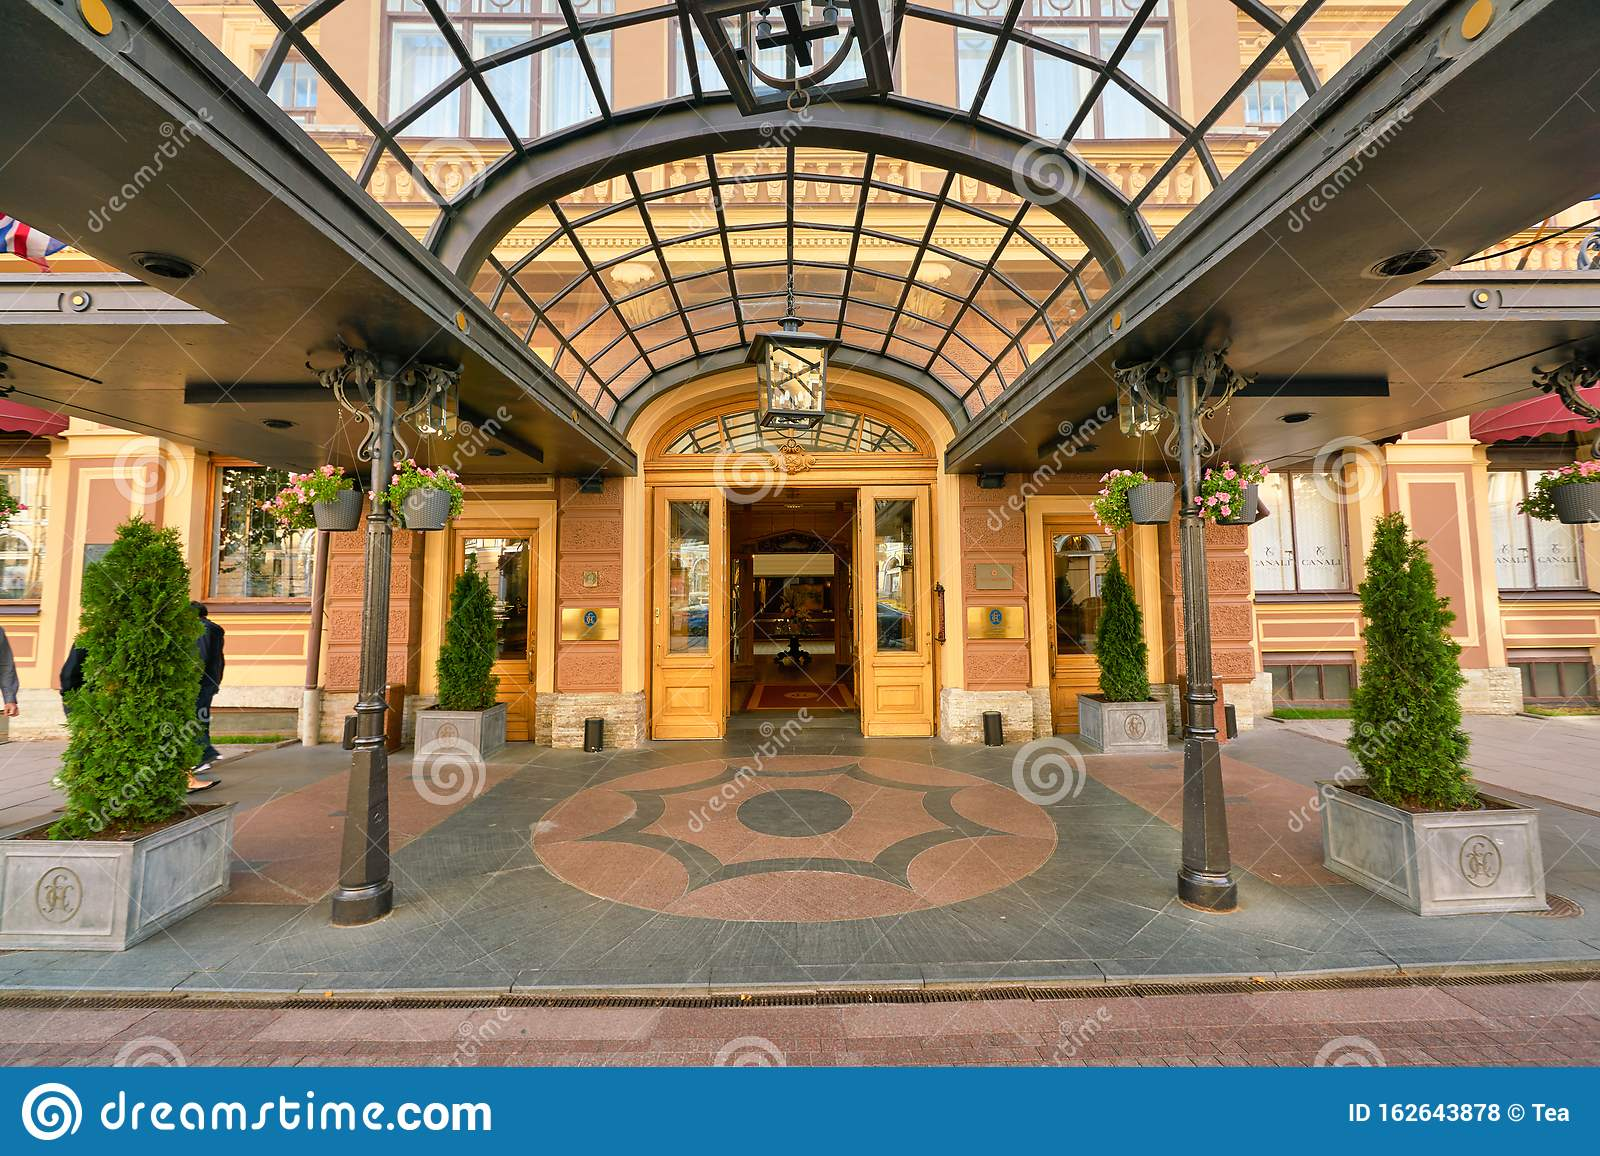 The Belmond Grand Hotel Europe Editorial Stock Photo Image Of Luxury Building 162643878